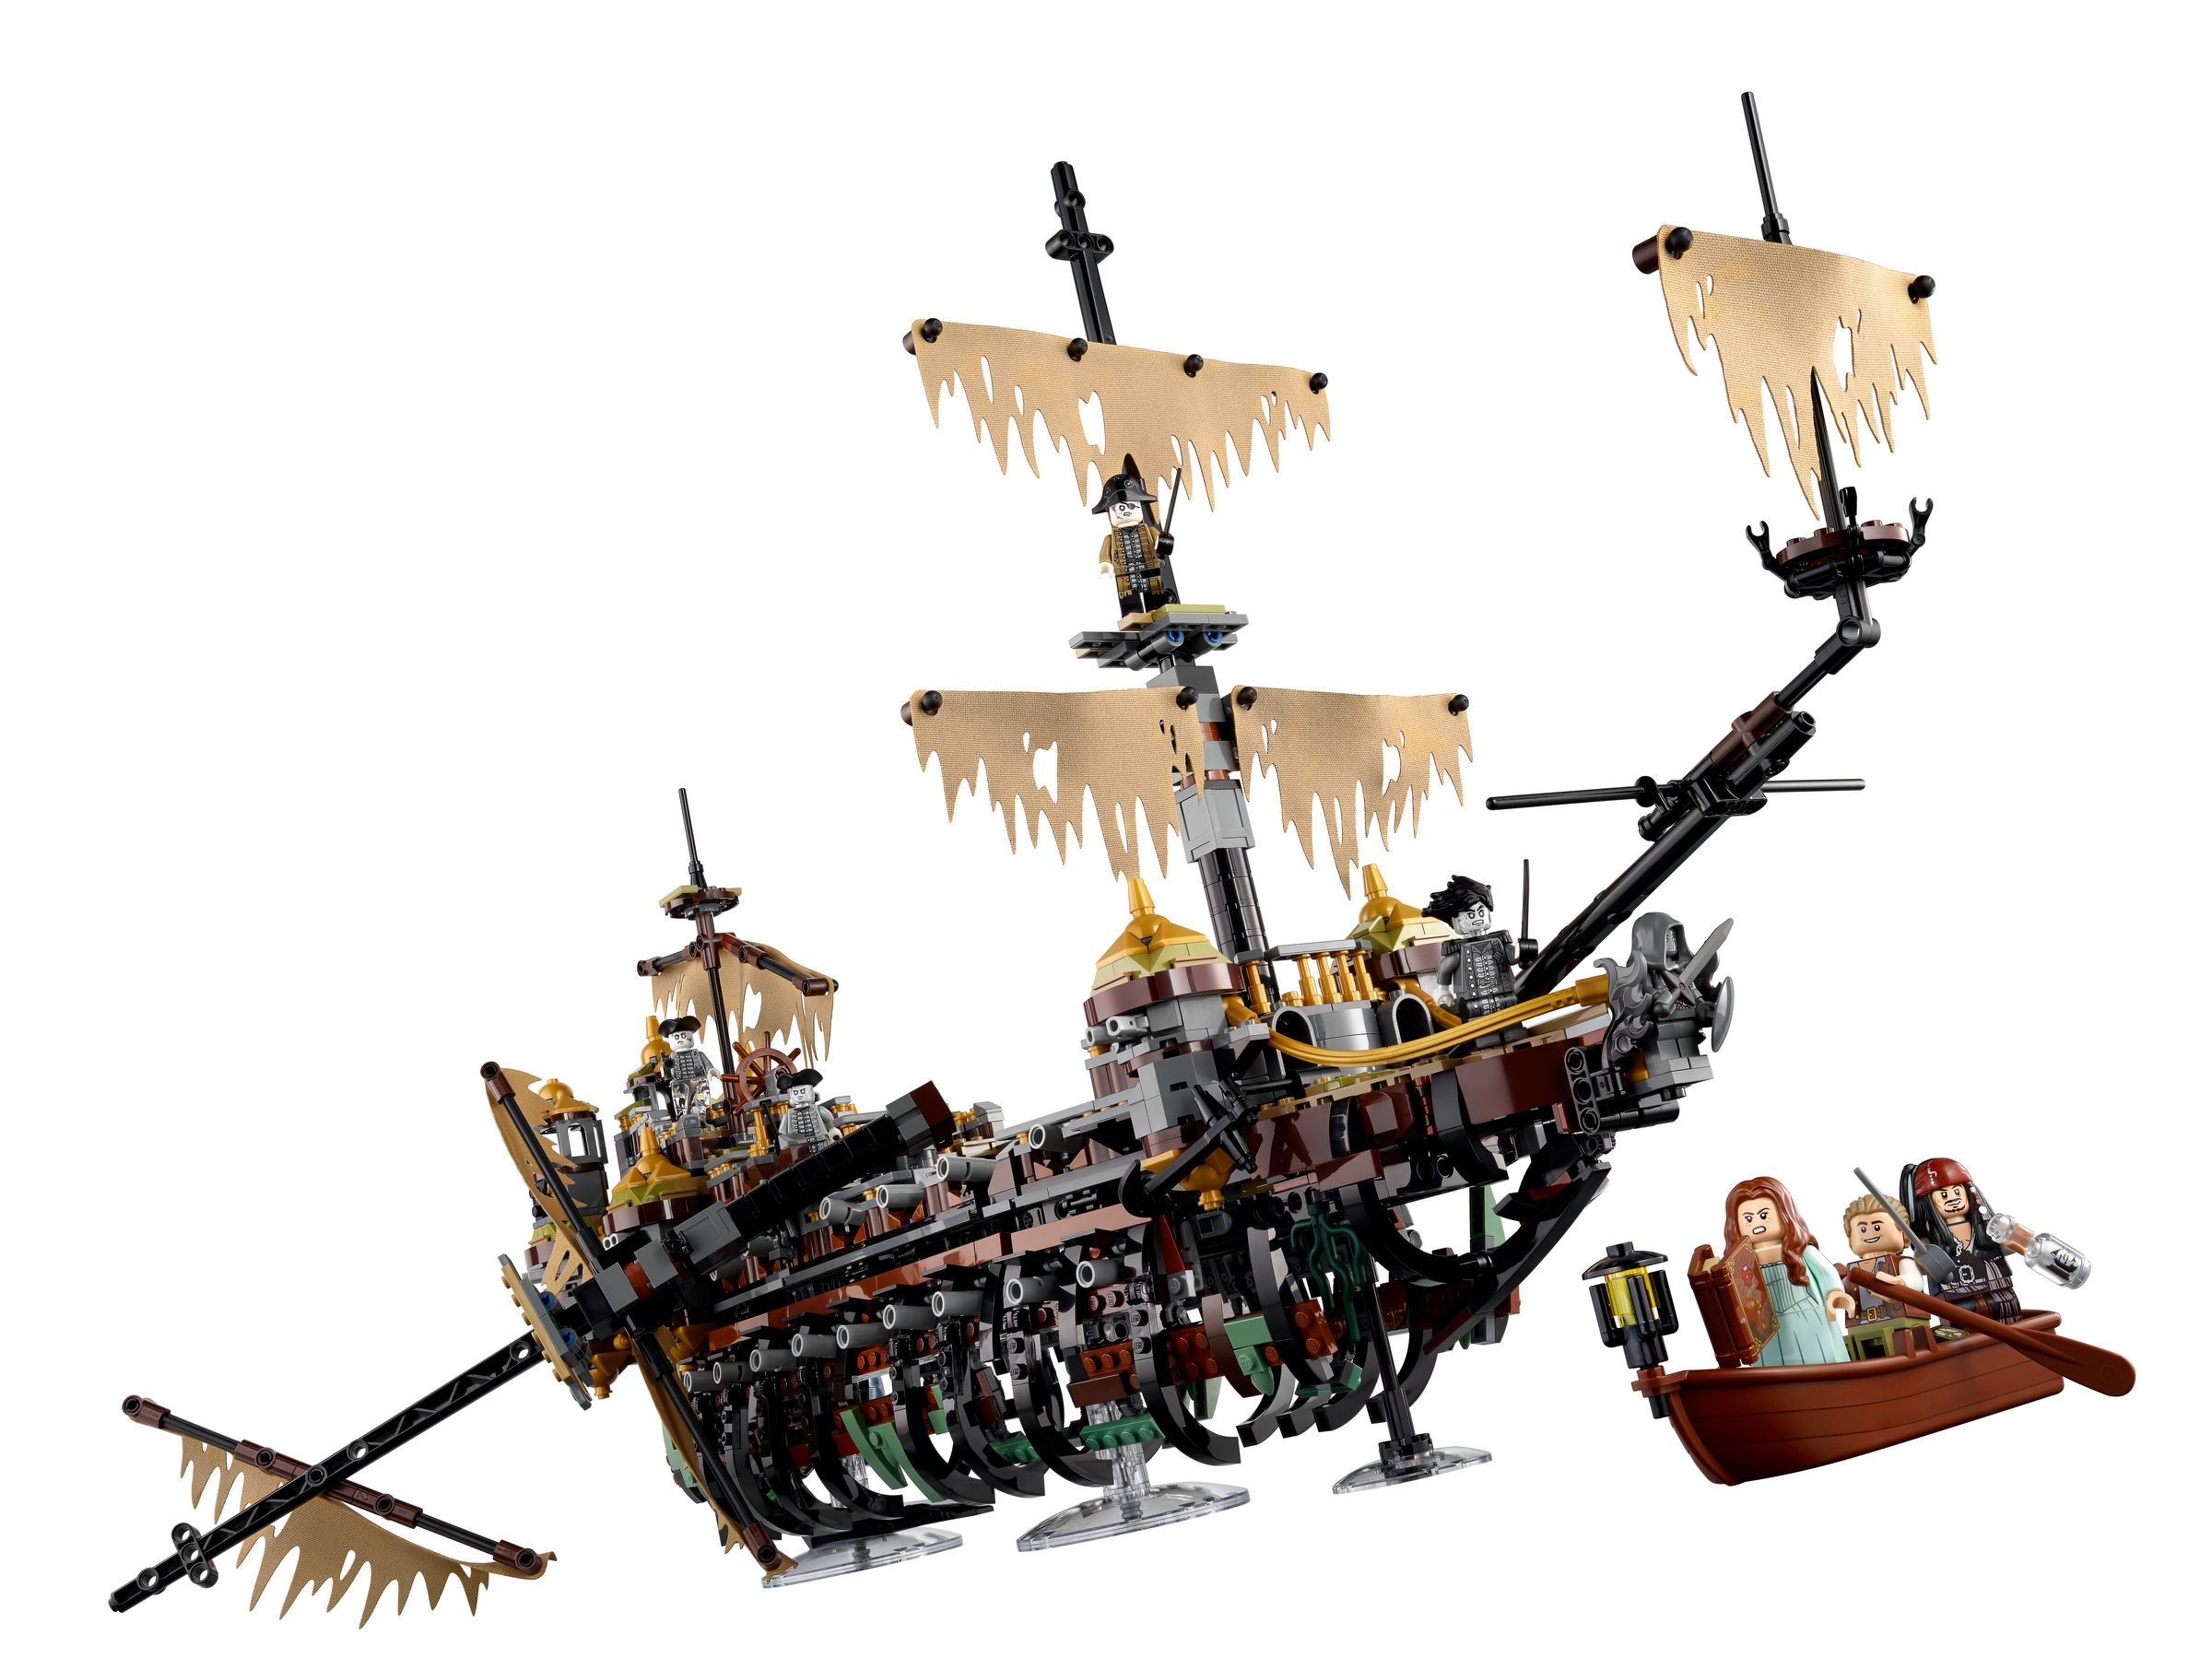 LEGO Advanced Models 71042 Silent Mary LEGO_71042_alt1.jpg